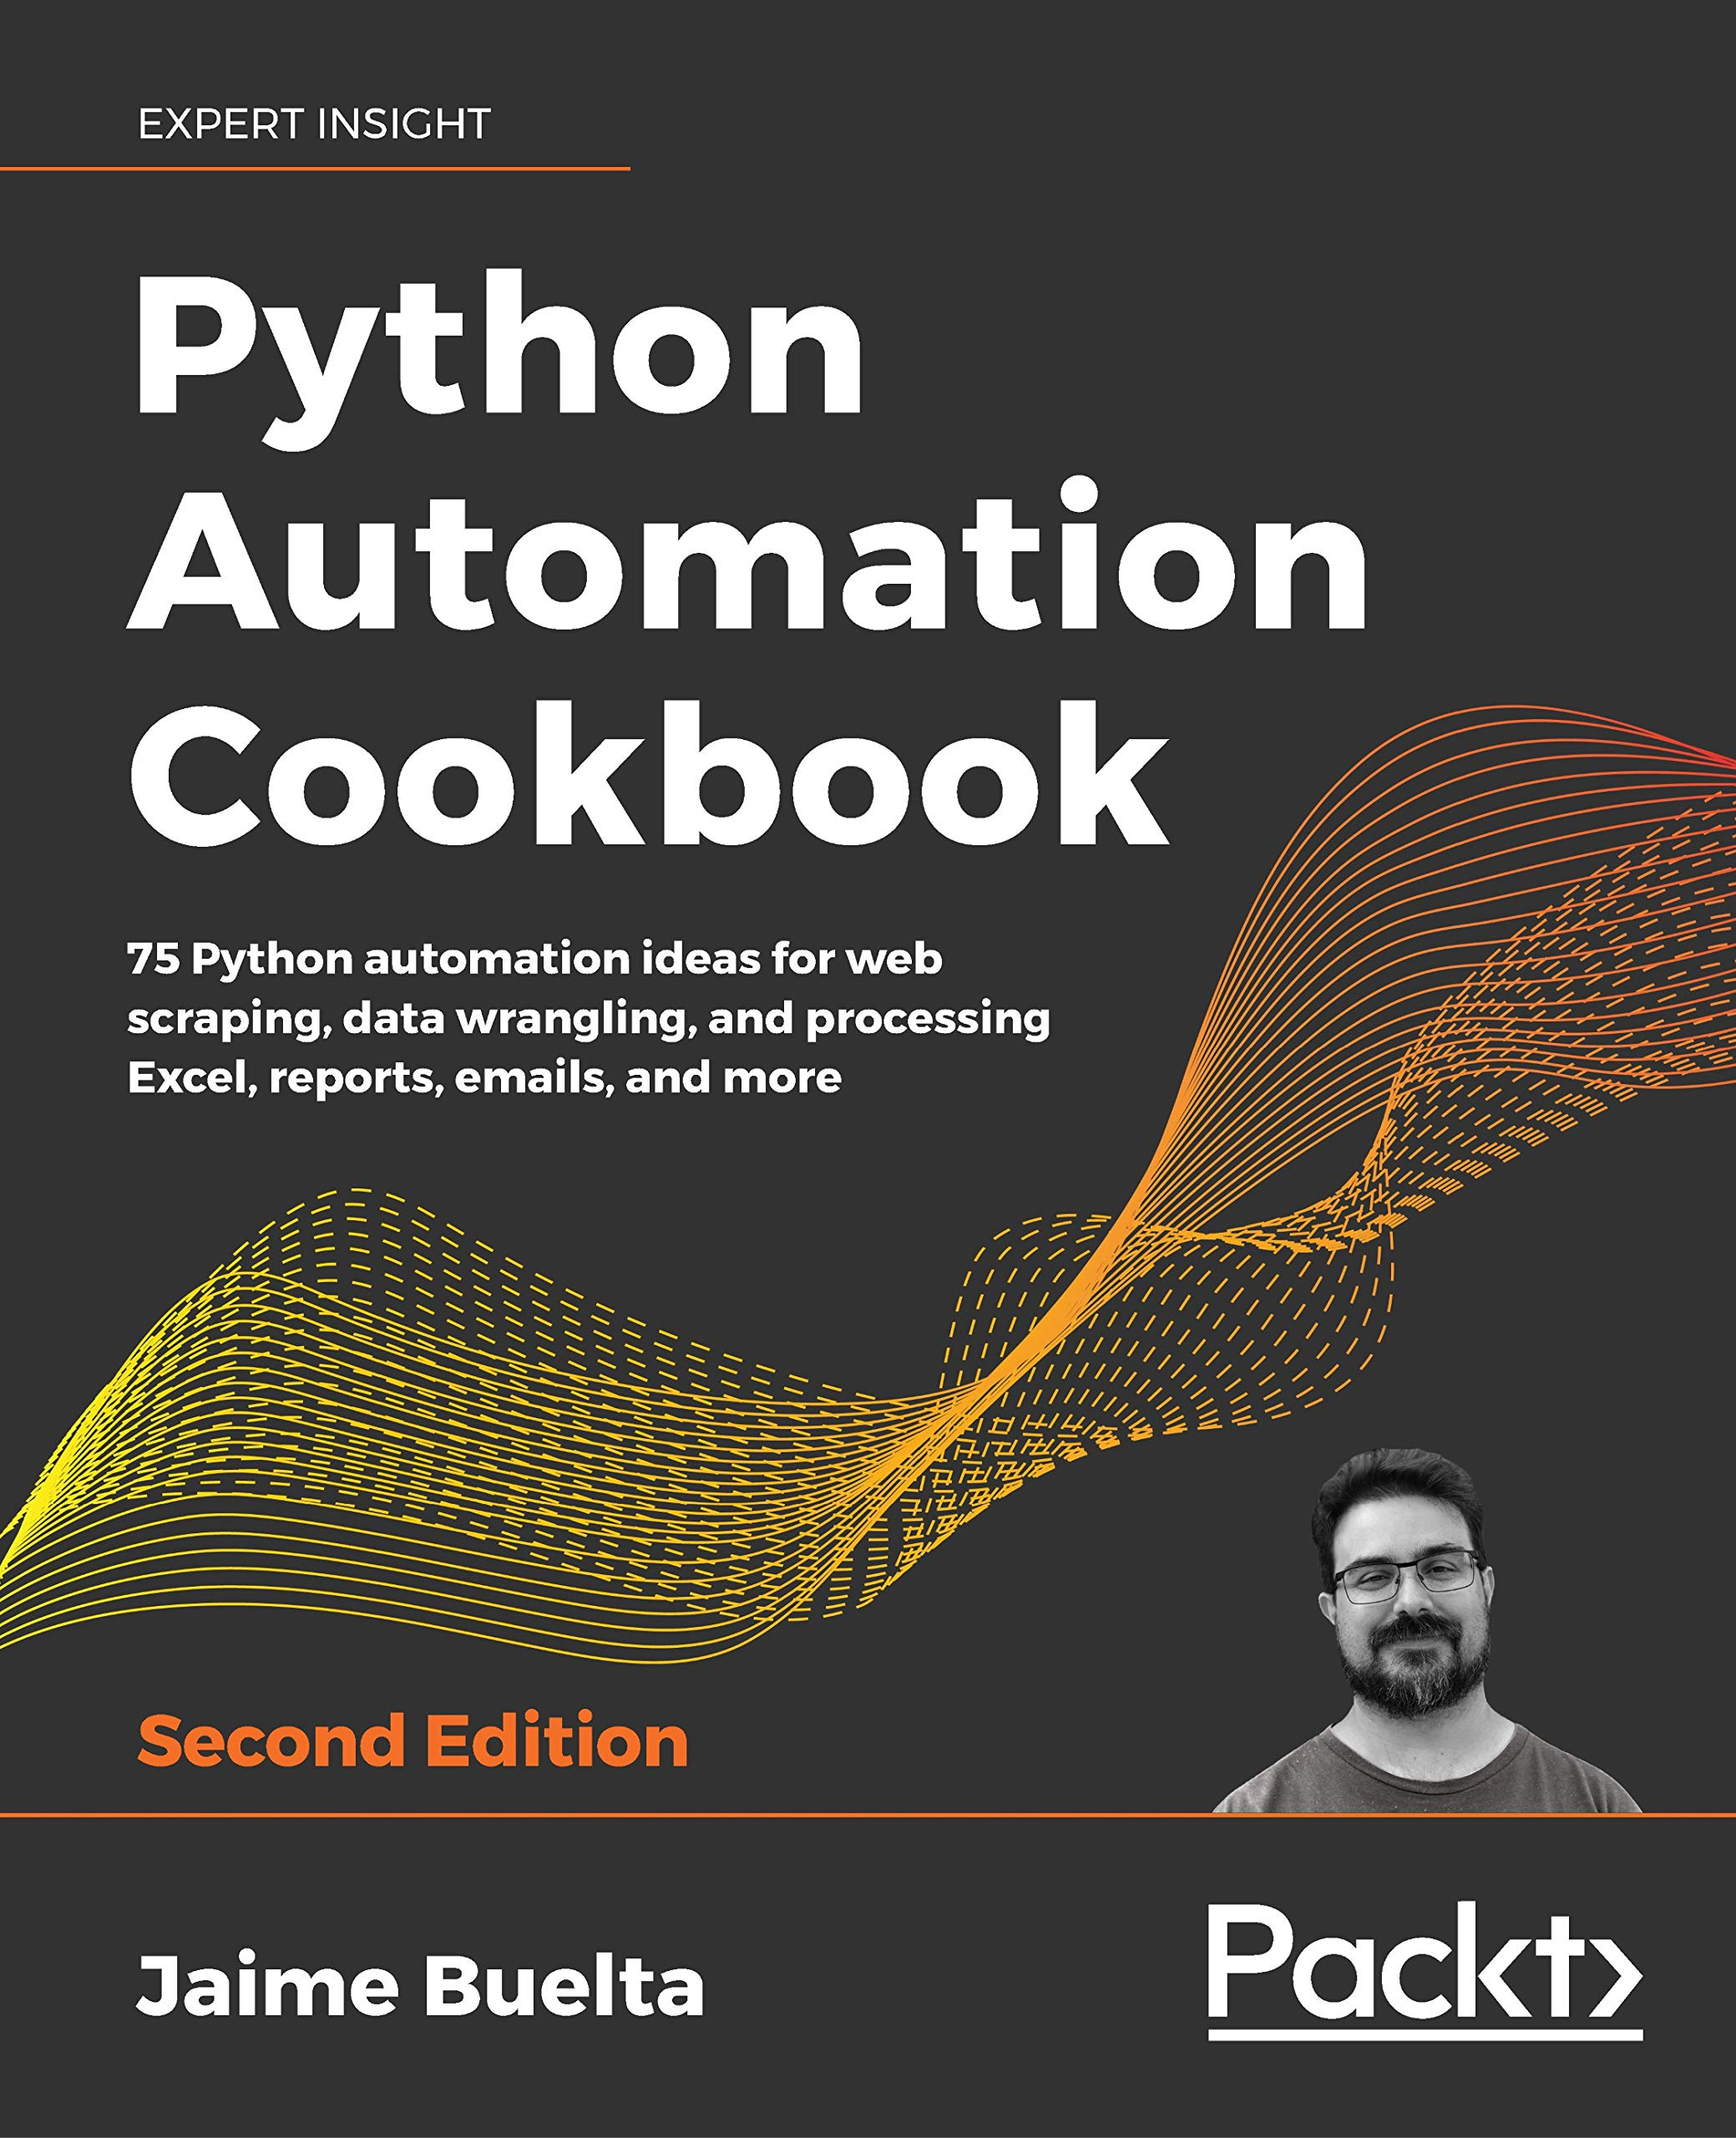 Python Automation Cookbook: 75 Python automation ideas for web scraping, data wrangling, and processing Excel, reports, emails, and more, 2nd Edition por Jaime Buelta